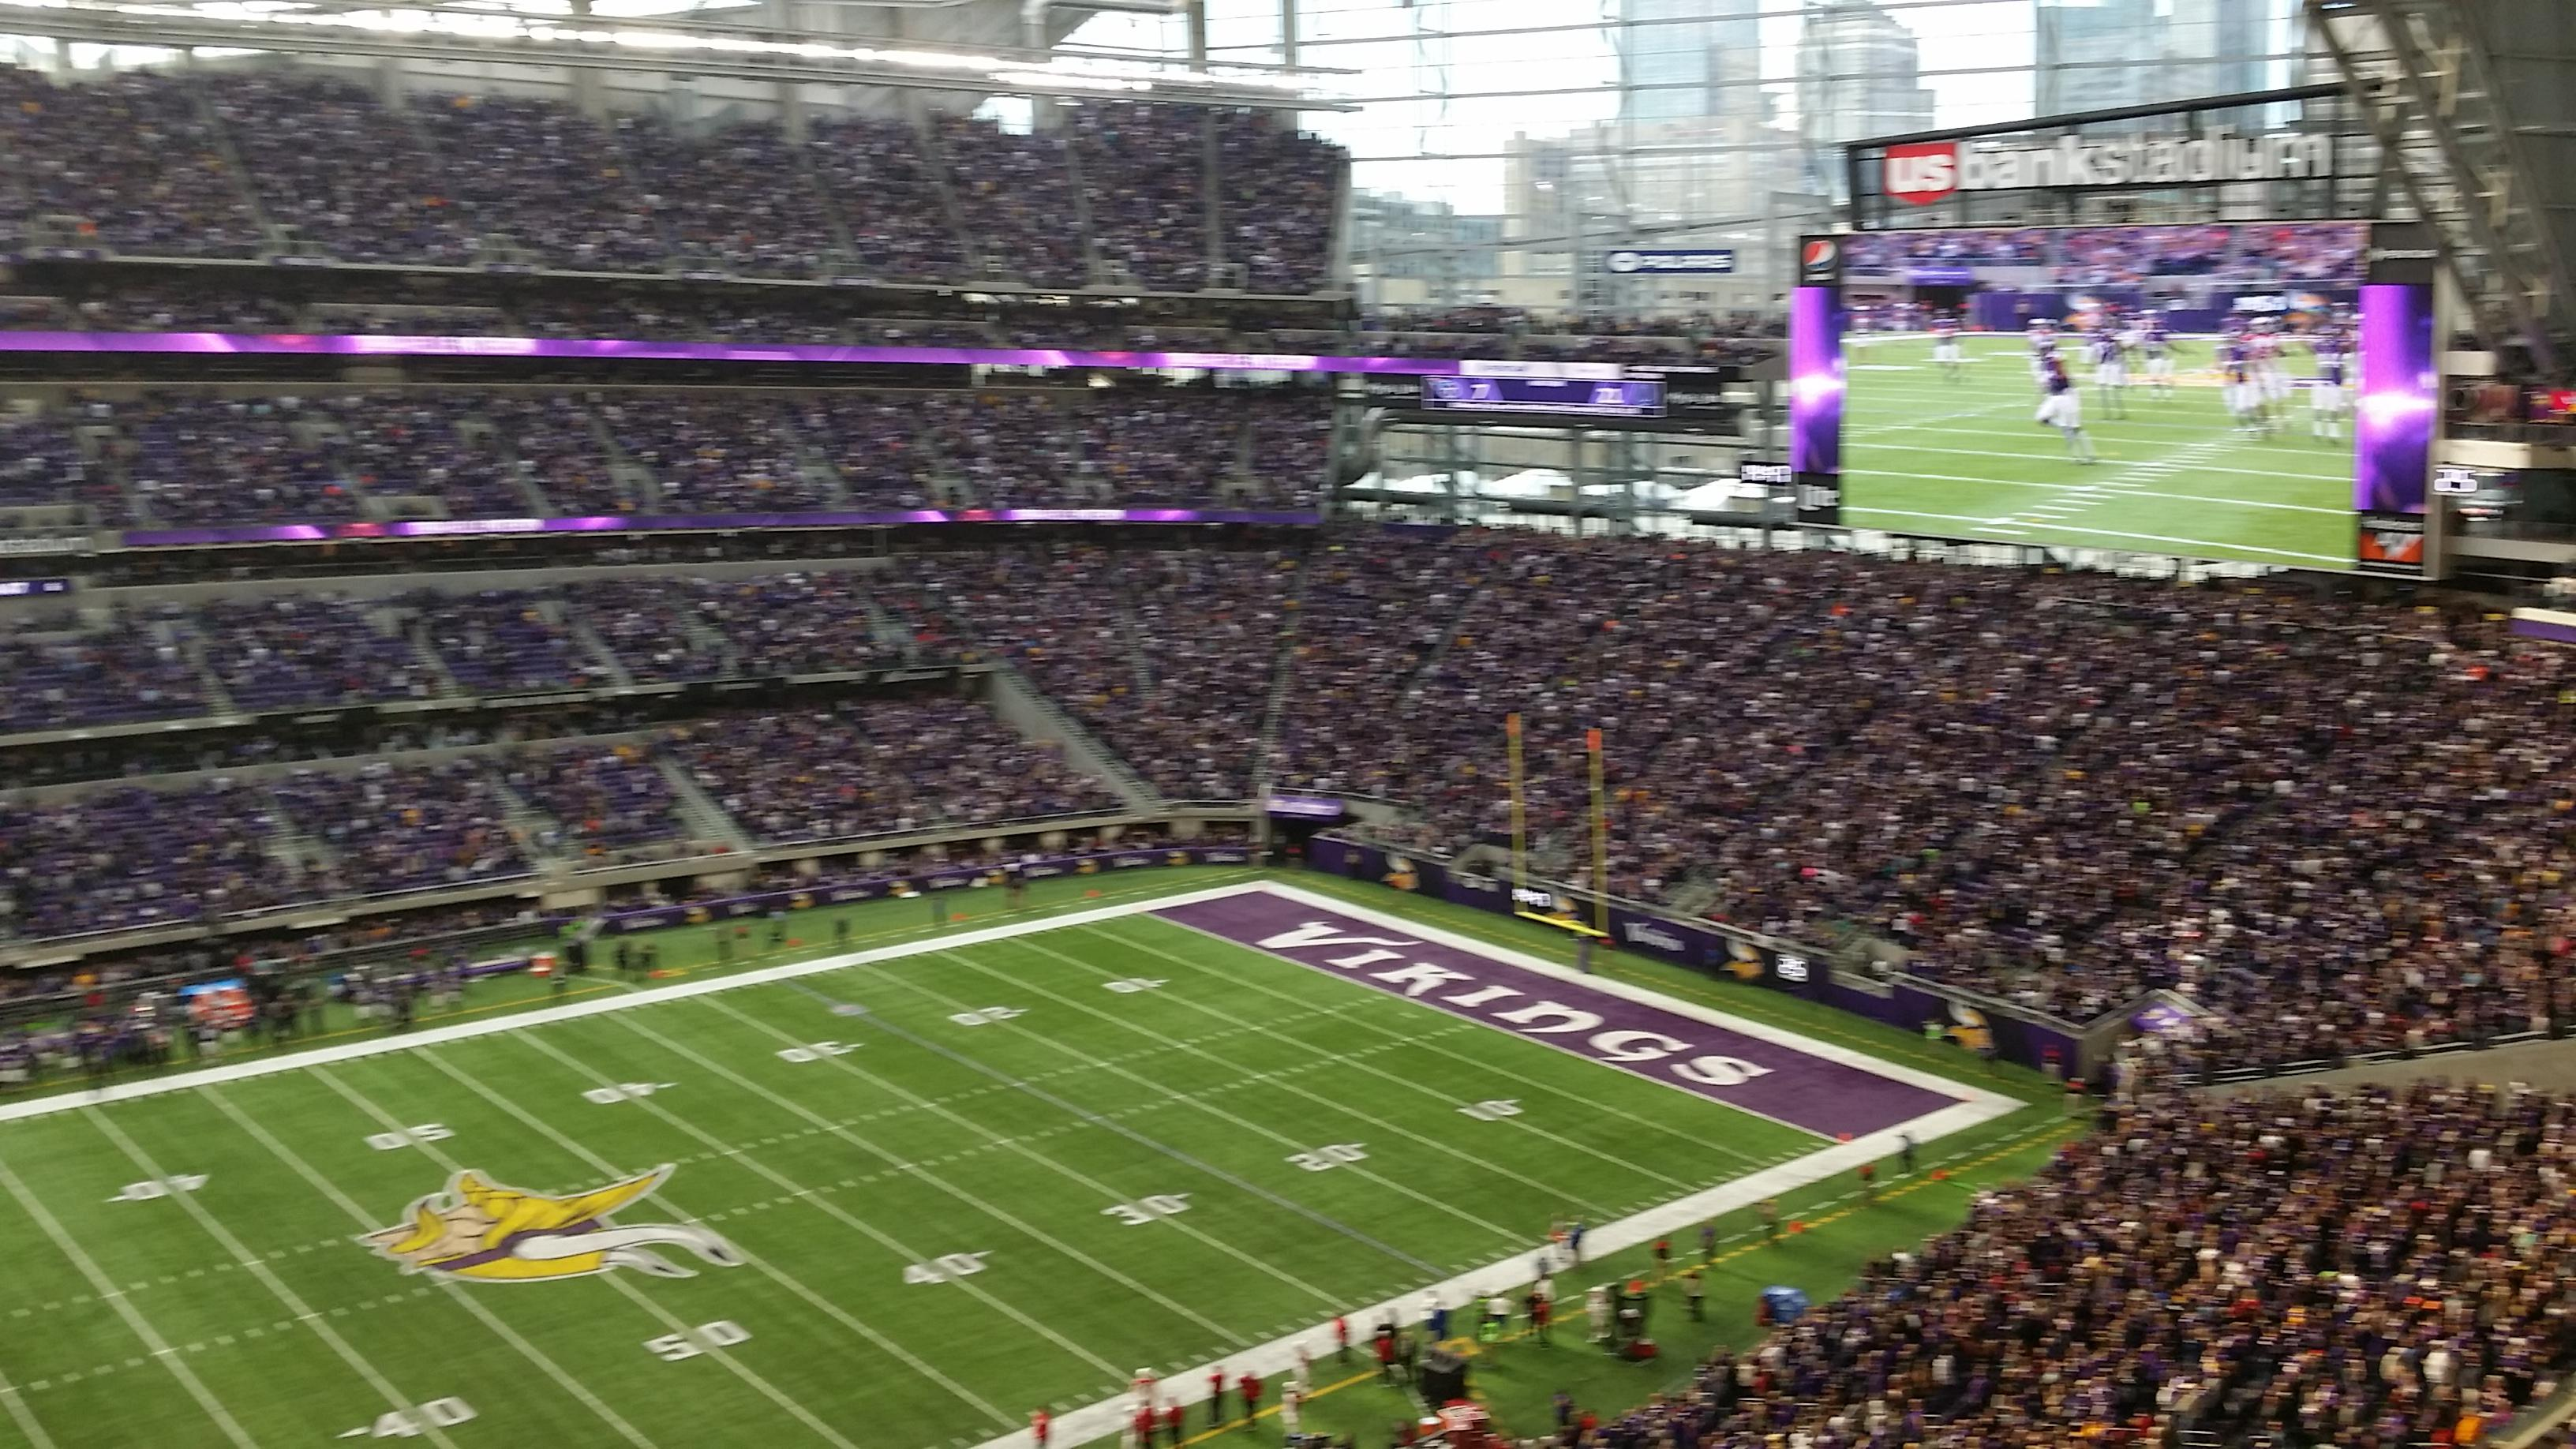 U.S. Bank Stadium Section 314 Row B Seat 20